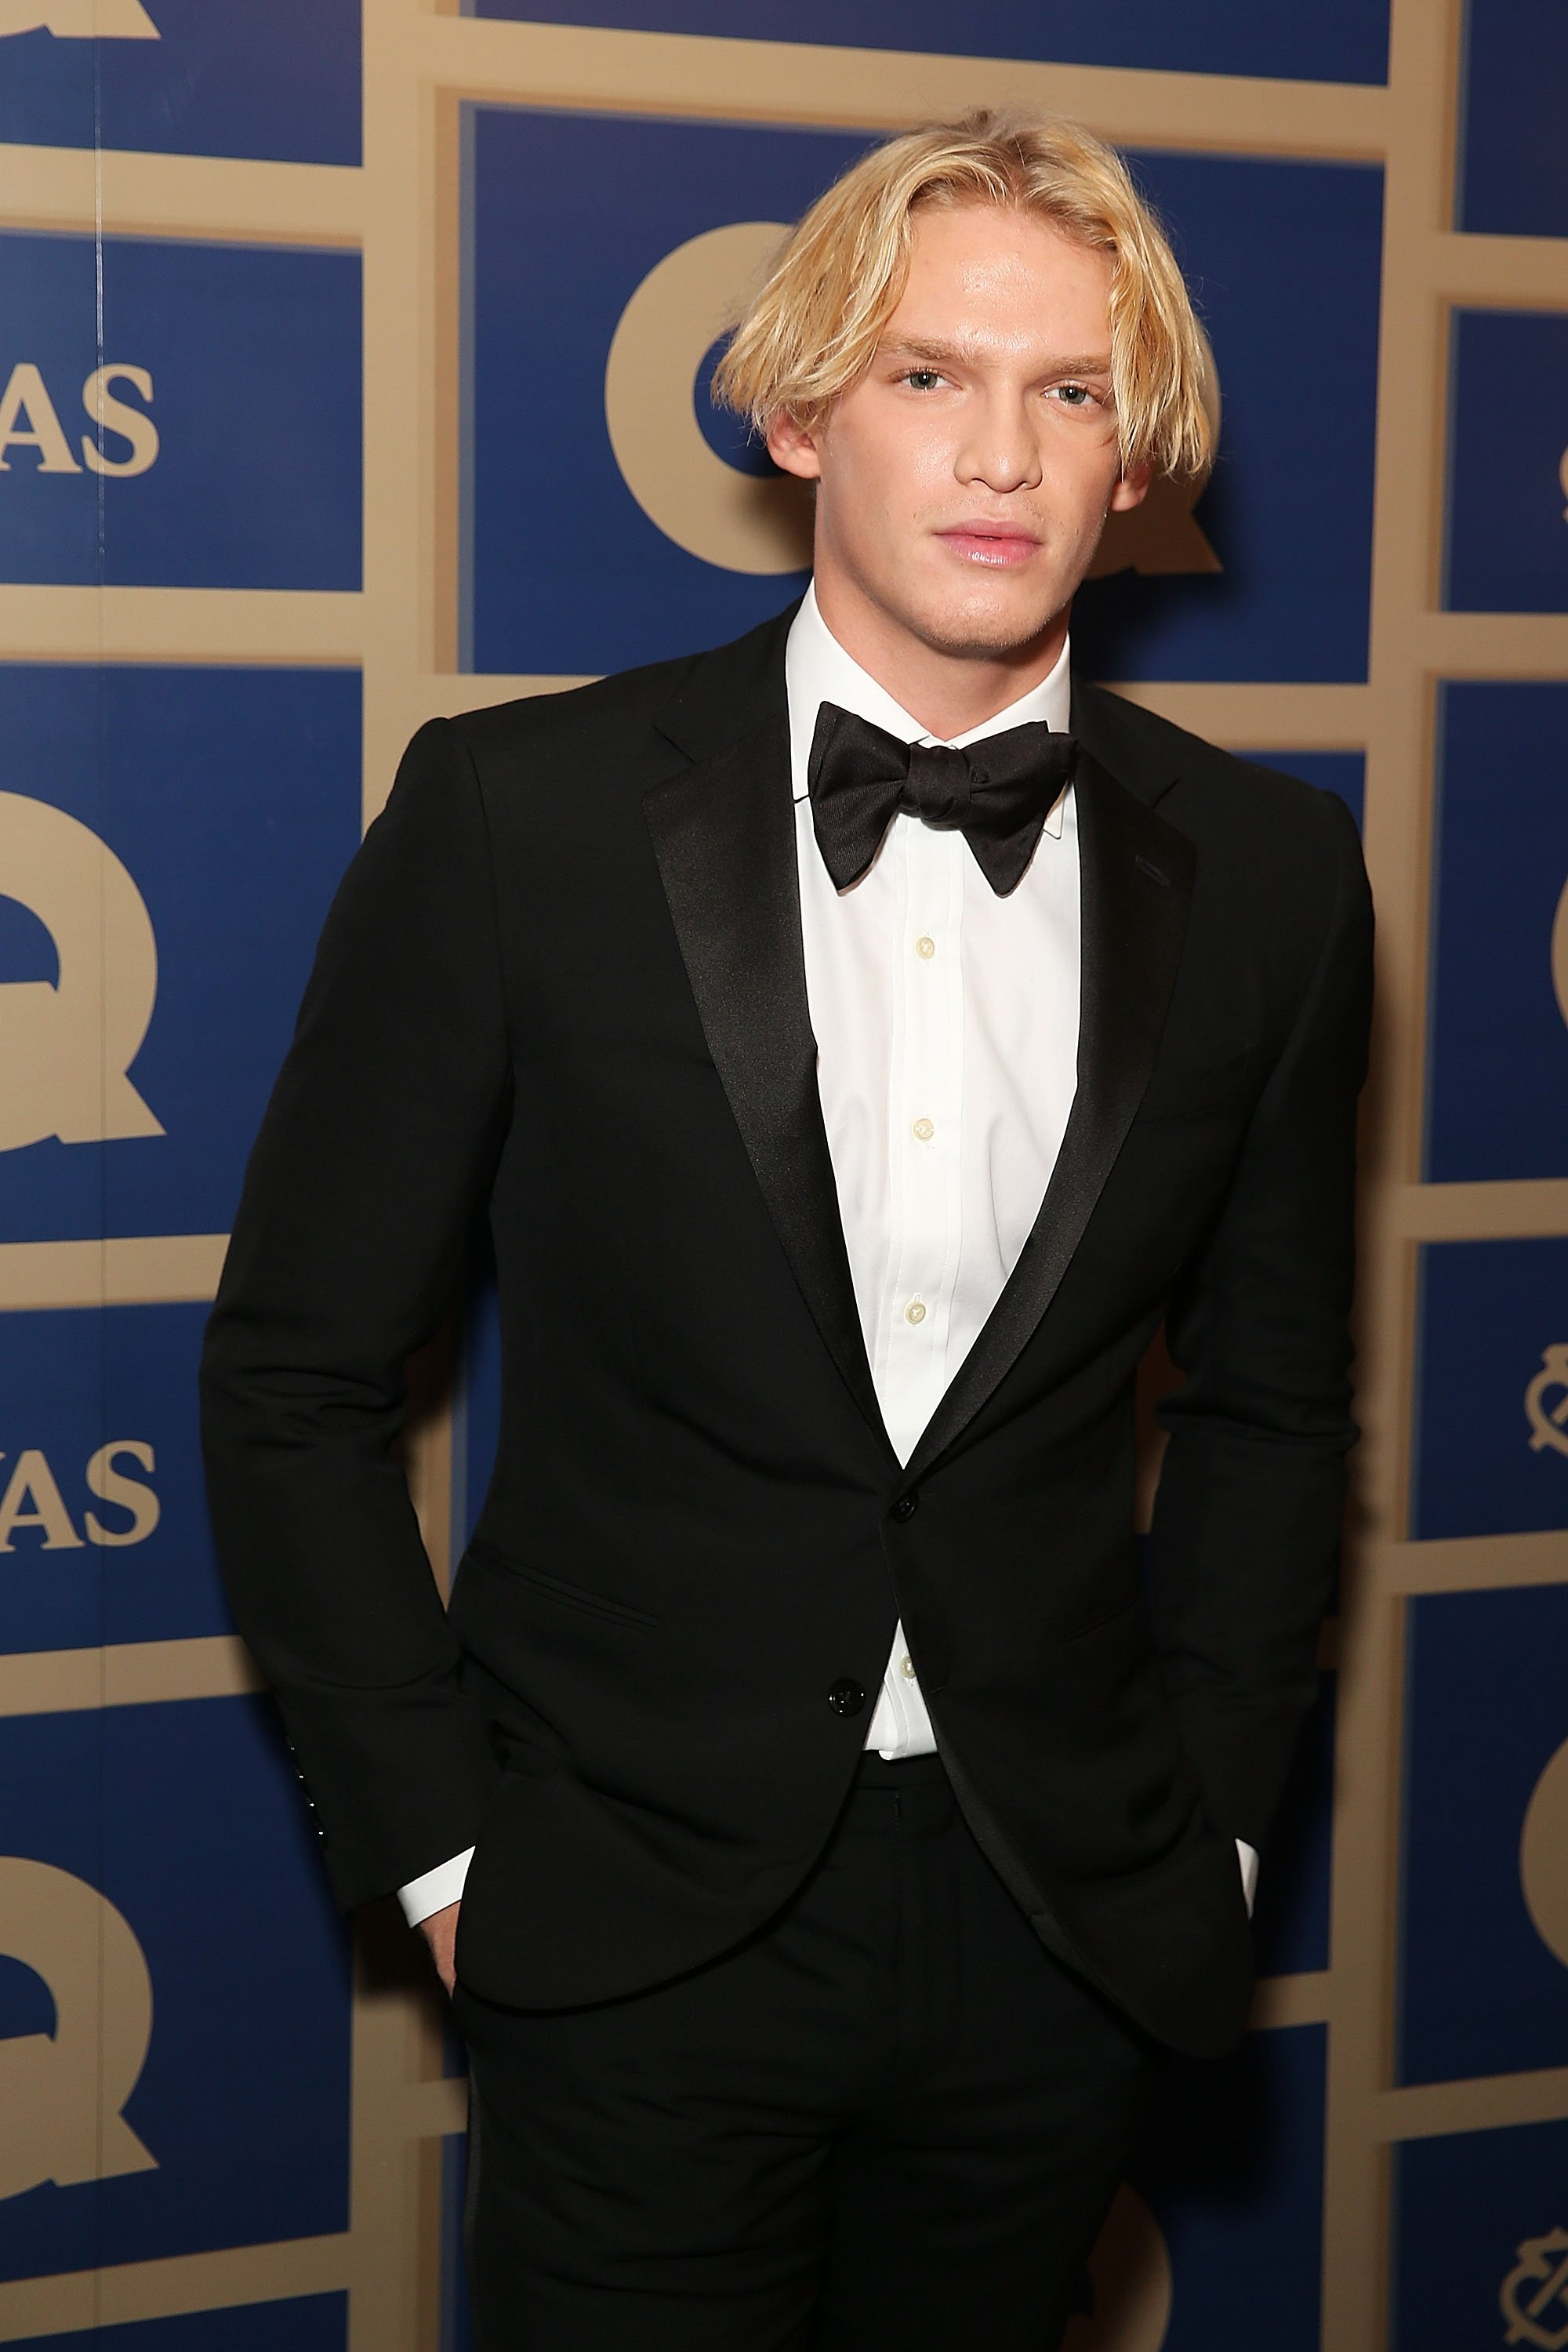 Cody Simpson pictured at 2015 GQ Men Of The Year Awards in Sydney, Australia on November 10, 2015. | Photo: Getty Images